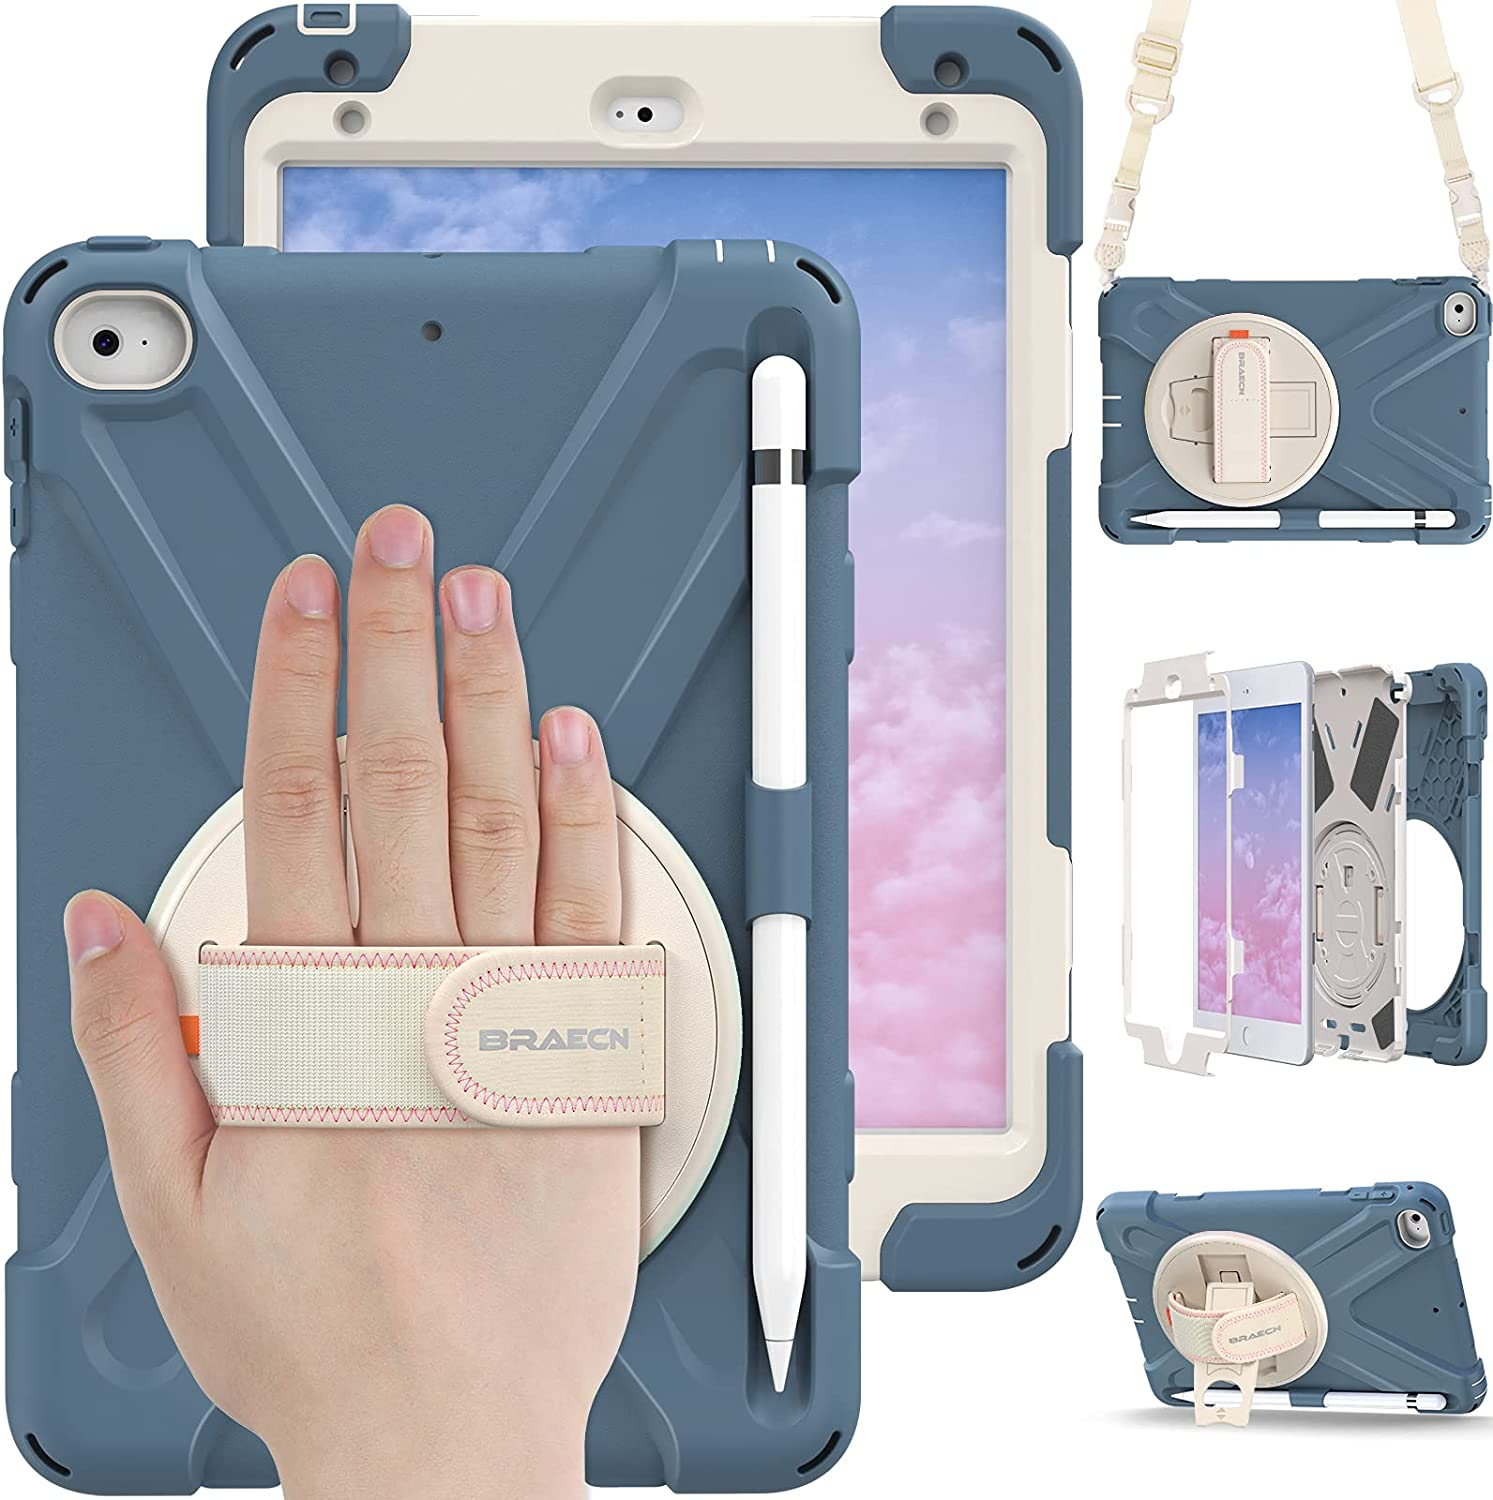 BRAECN iPad Mini 5 Case for Kids, iPad Mini 4 Cases, Heavy Duty Shockproof Protective Case with Hand Strap, Carrying Strap, Kickstand, Pencil Holder for iPad 5th /4th Mini Generation - Cornflower Blue